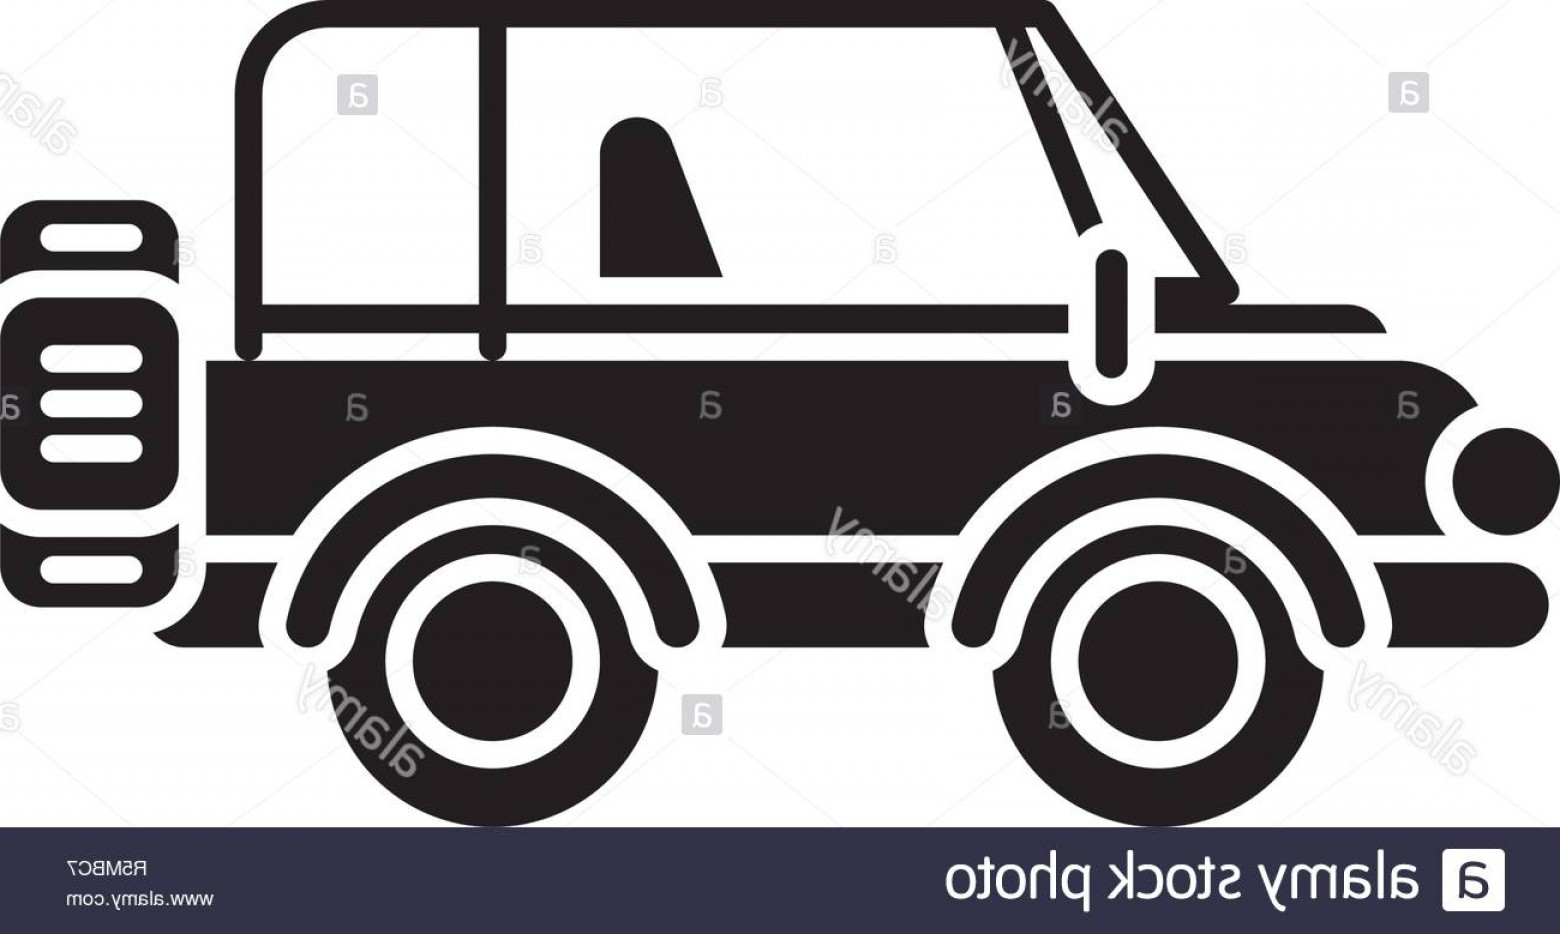 Vector Clip Art Of Jeep: Safari Jeep Black Icon Vector Sign On Isolated Background Safari Jeep Concept Symbol Illustration Image